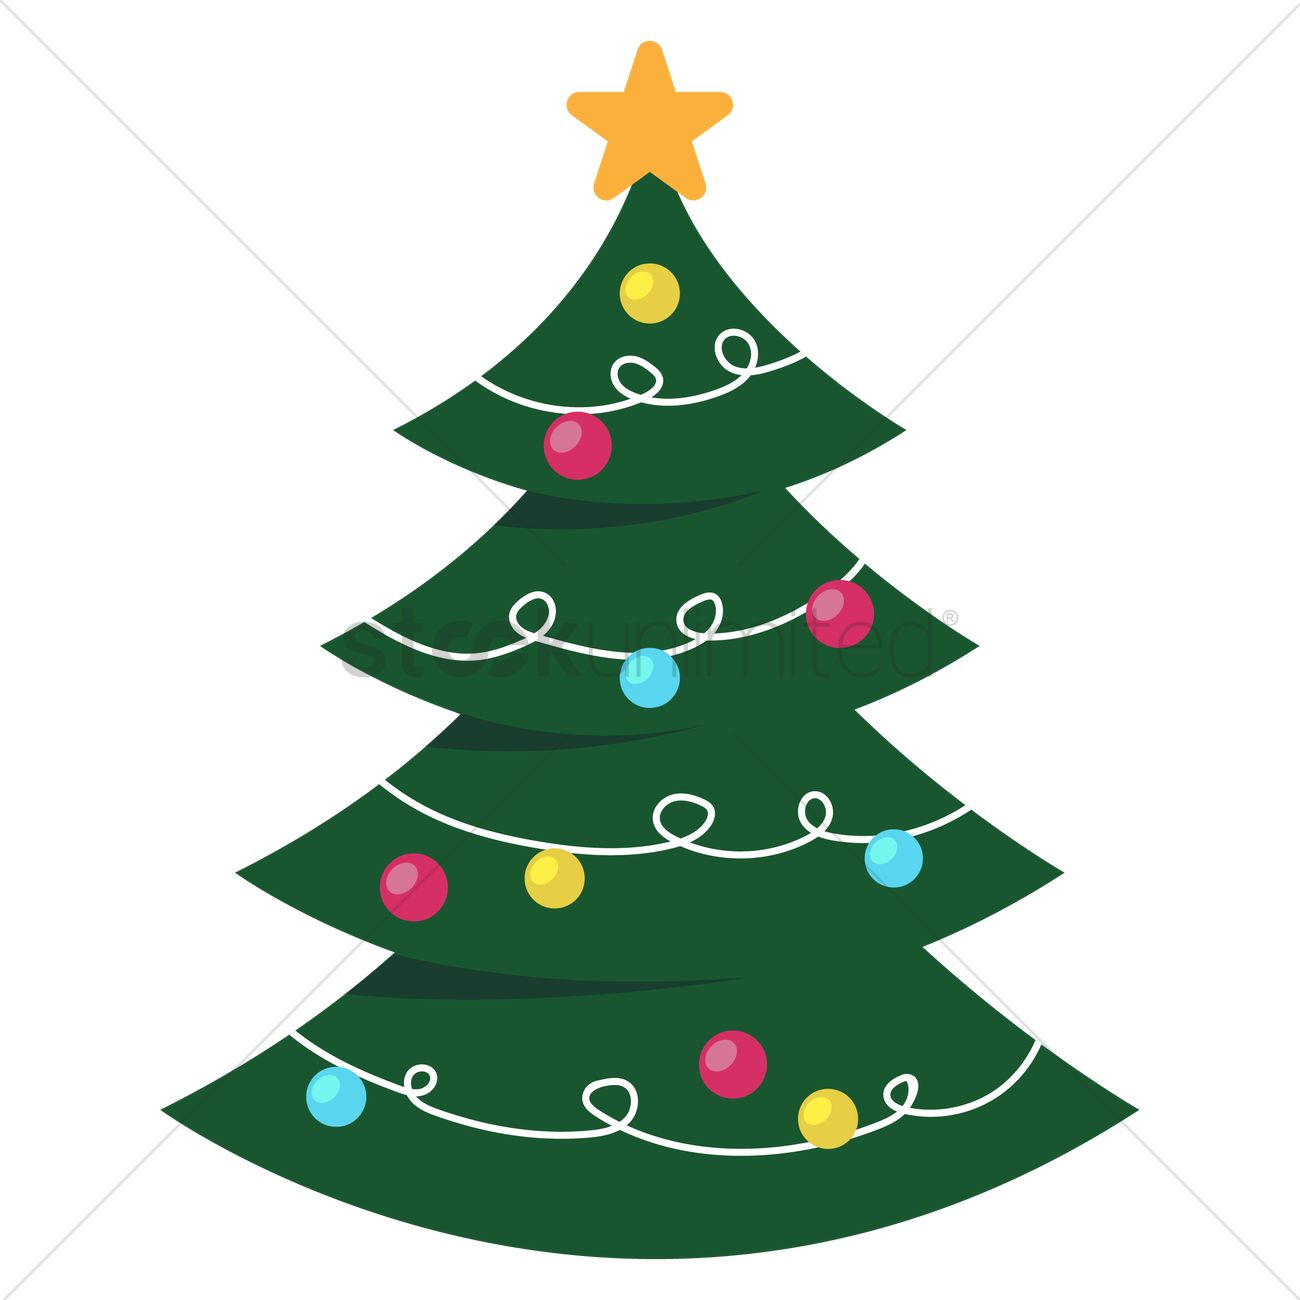 Christmas Tree Vector Image.Christmas Tree Vector Image 2079041 Stockunlimited